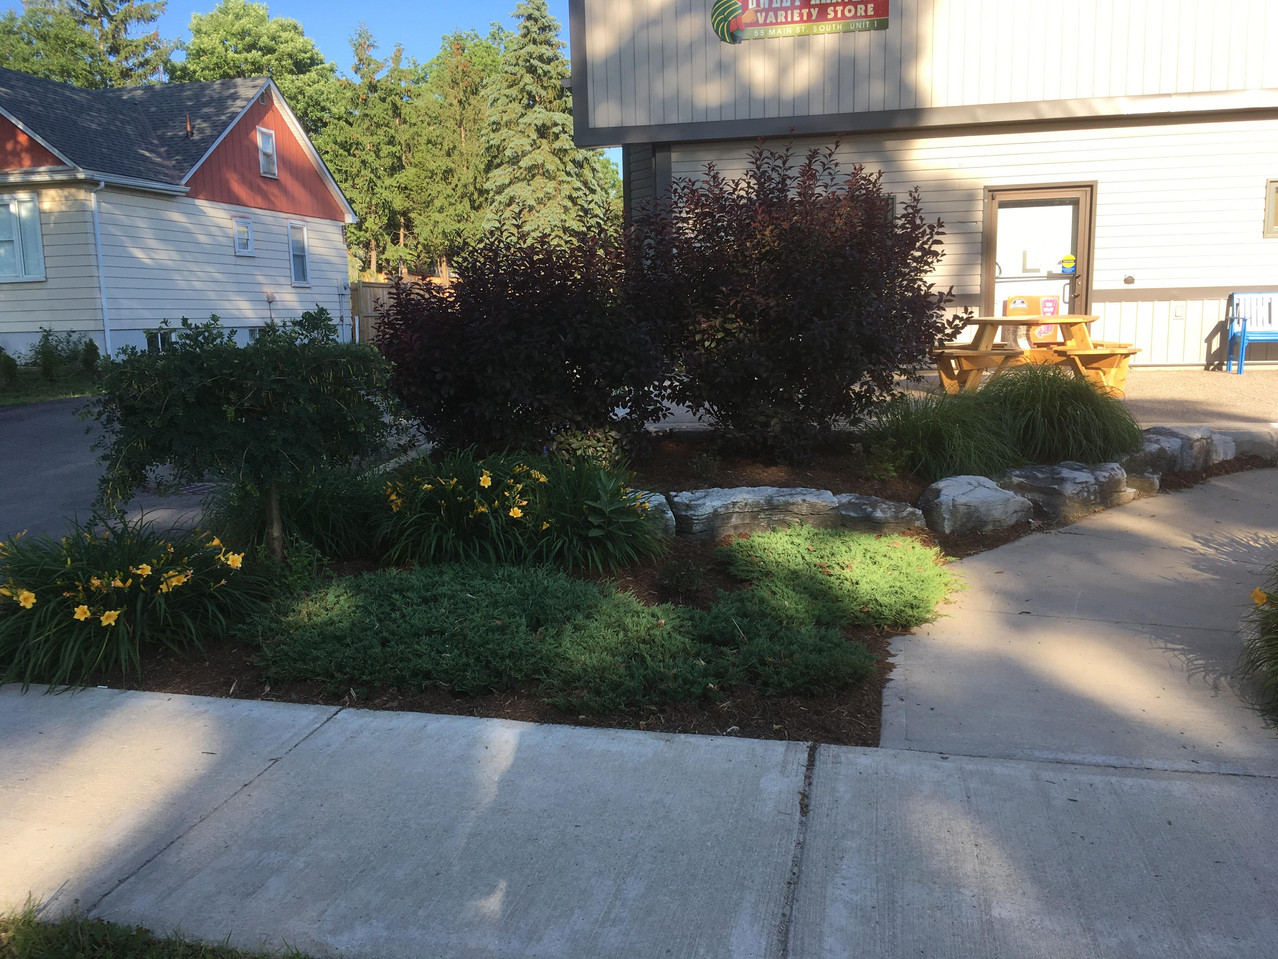 Town Home Landscaped area.